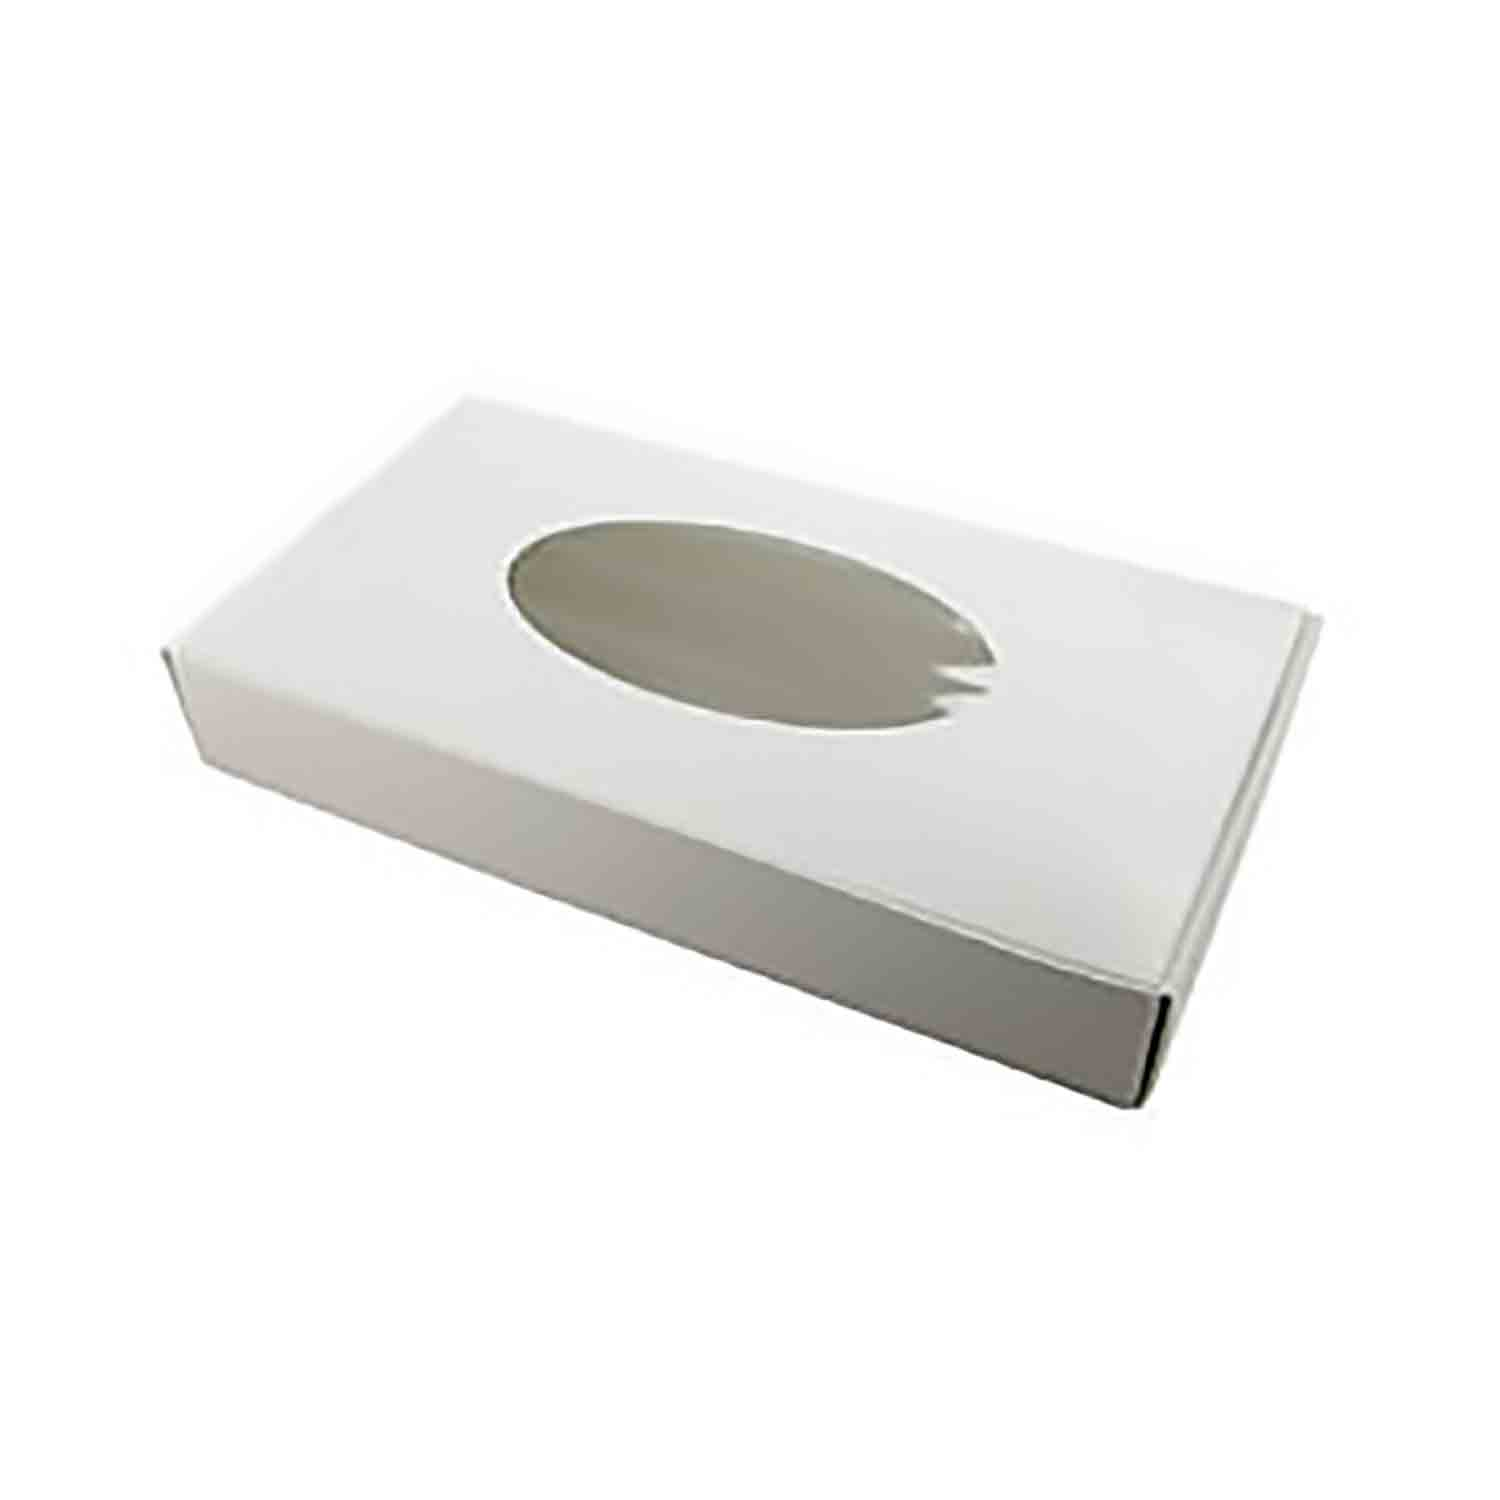 1 lb. White Candy Box with Window